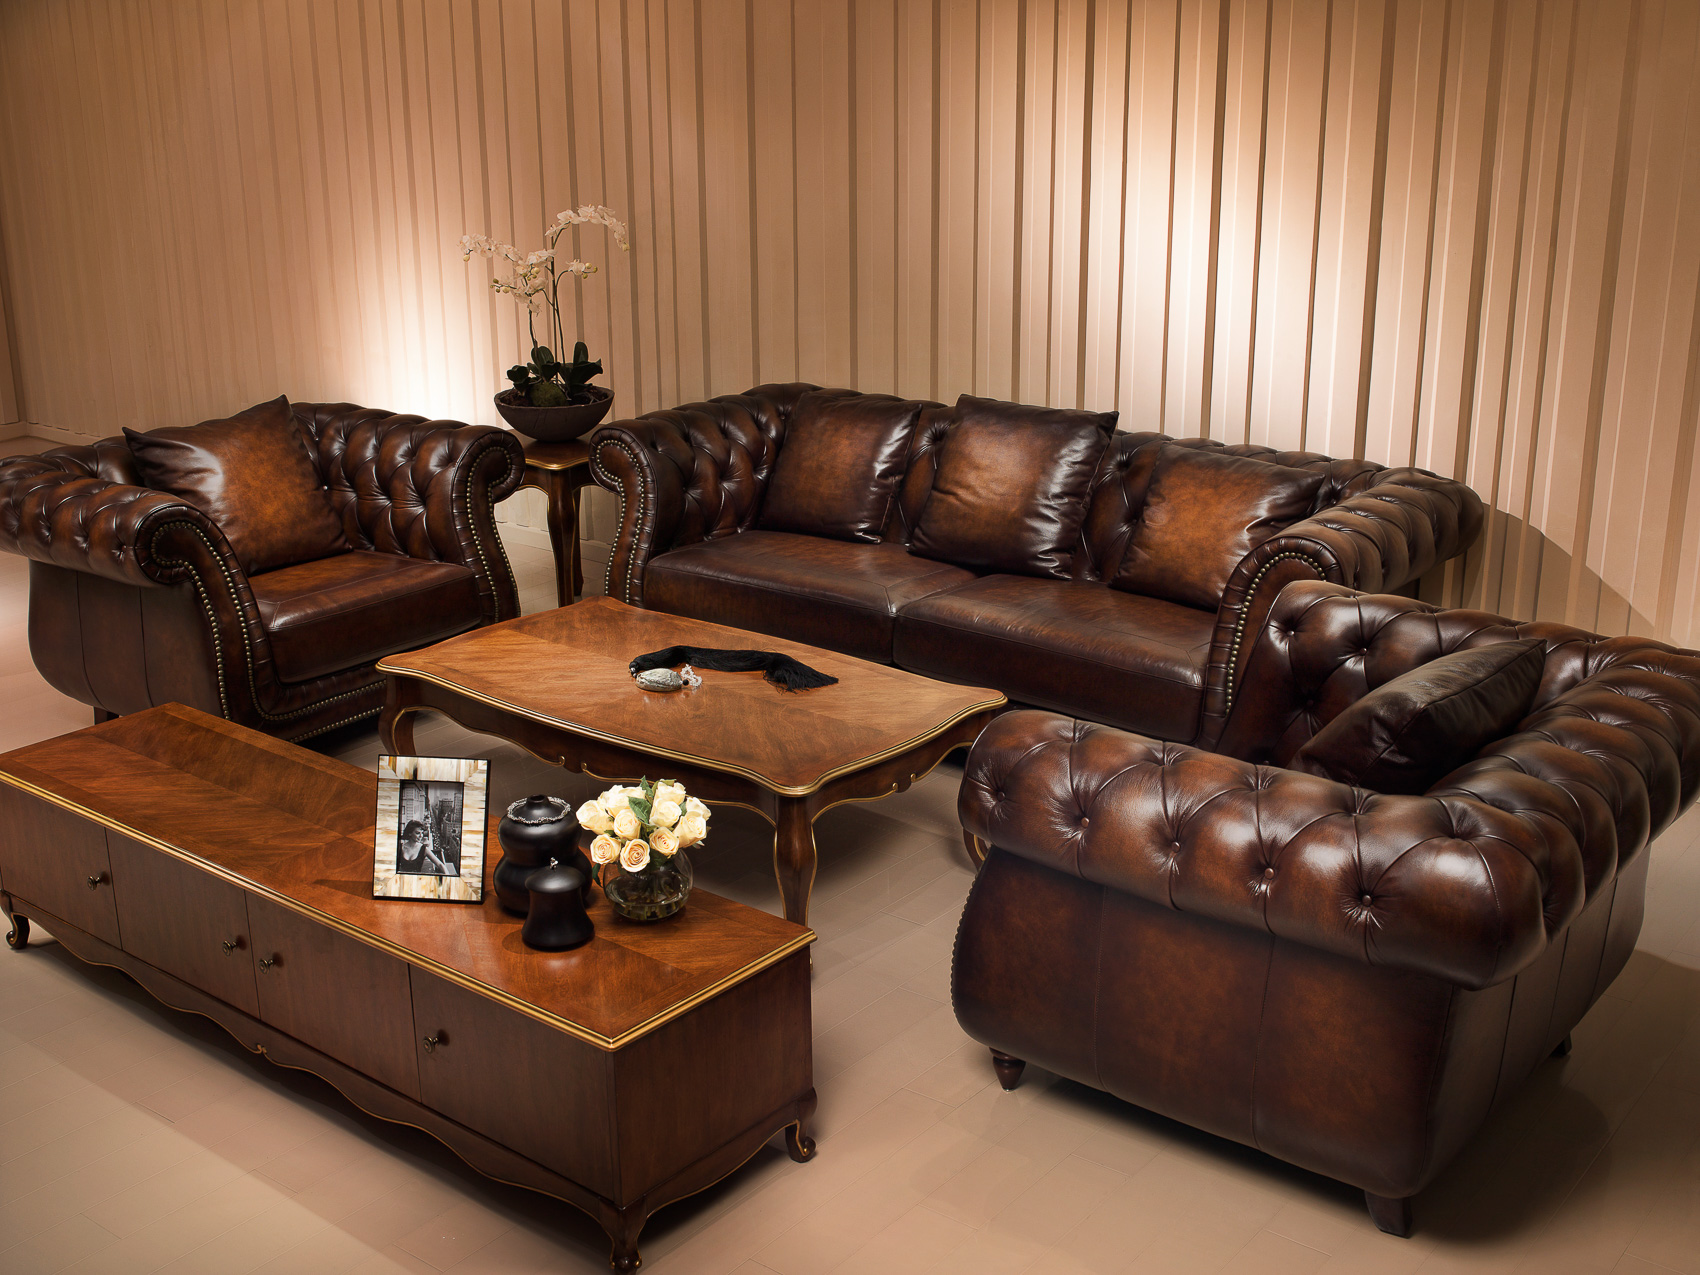 20120907_Product_Bonliving-Furniture_F-13.jpg